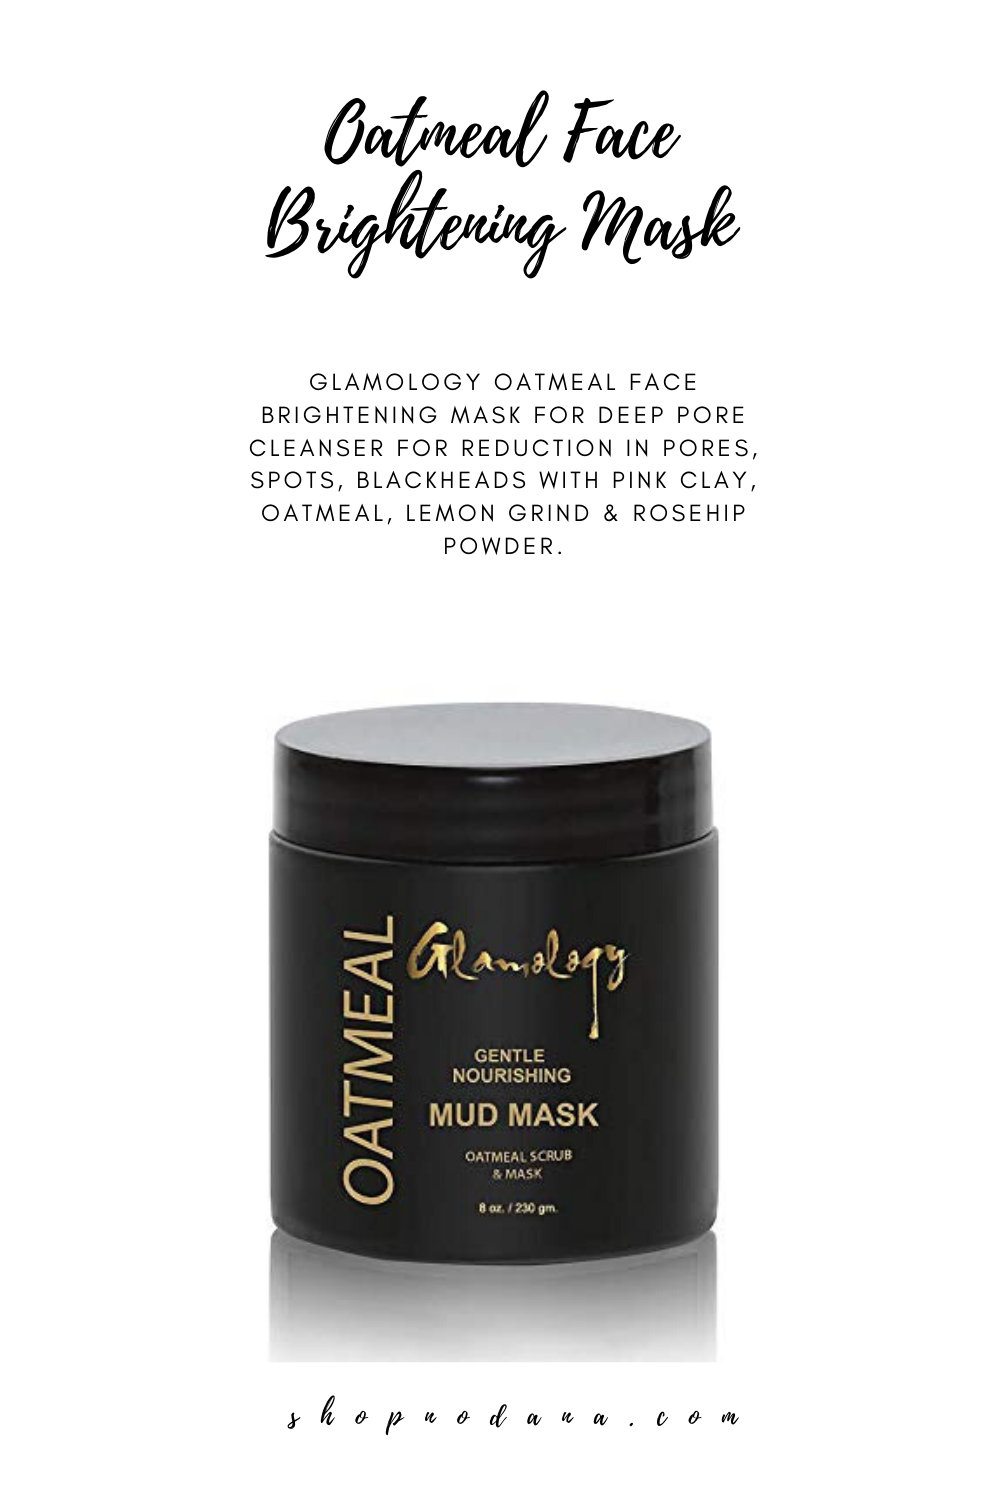 Oatmeal Face Brightening Mask